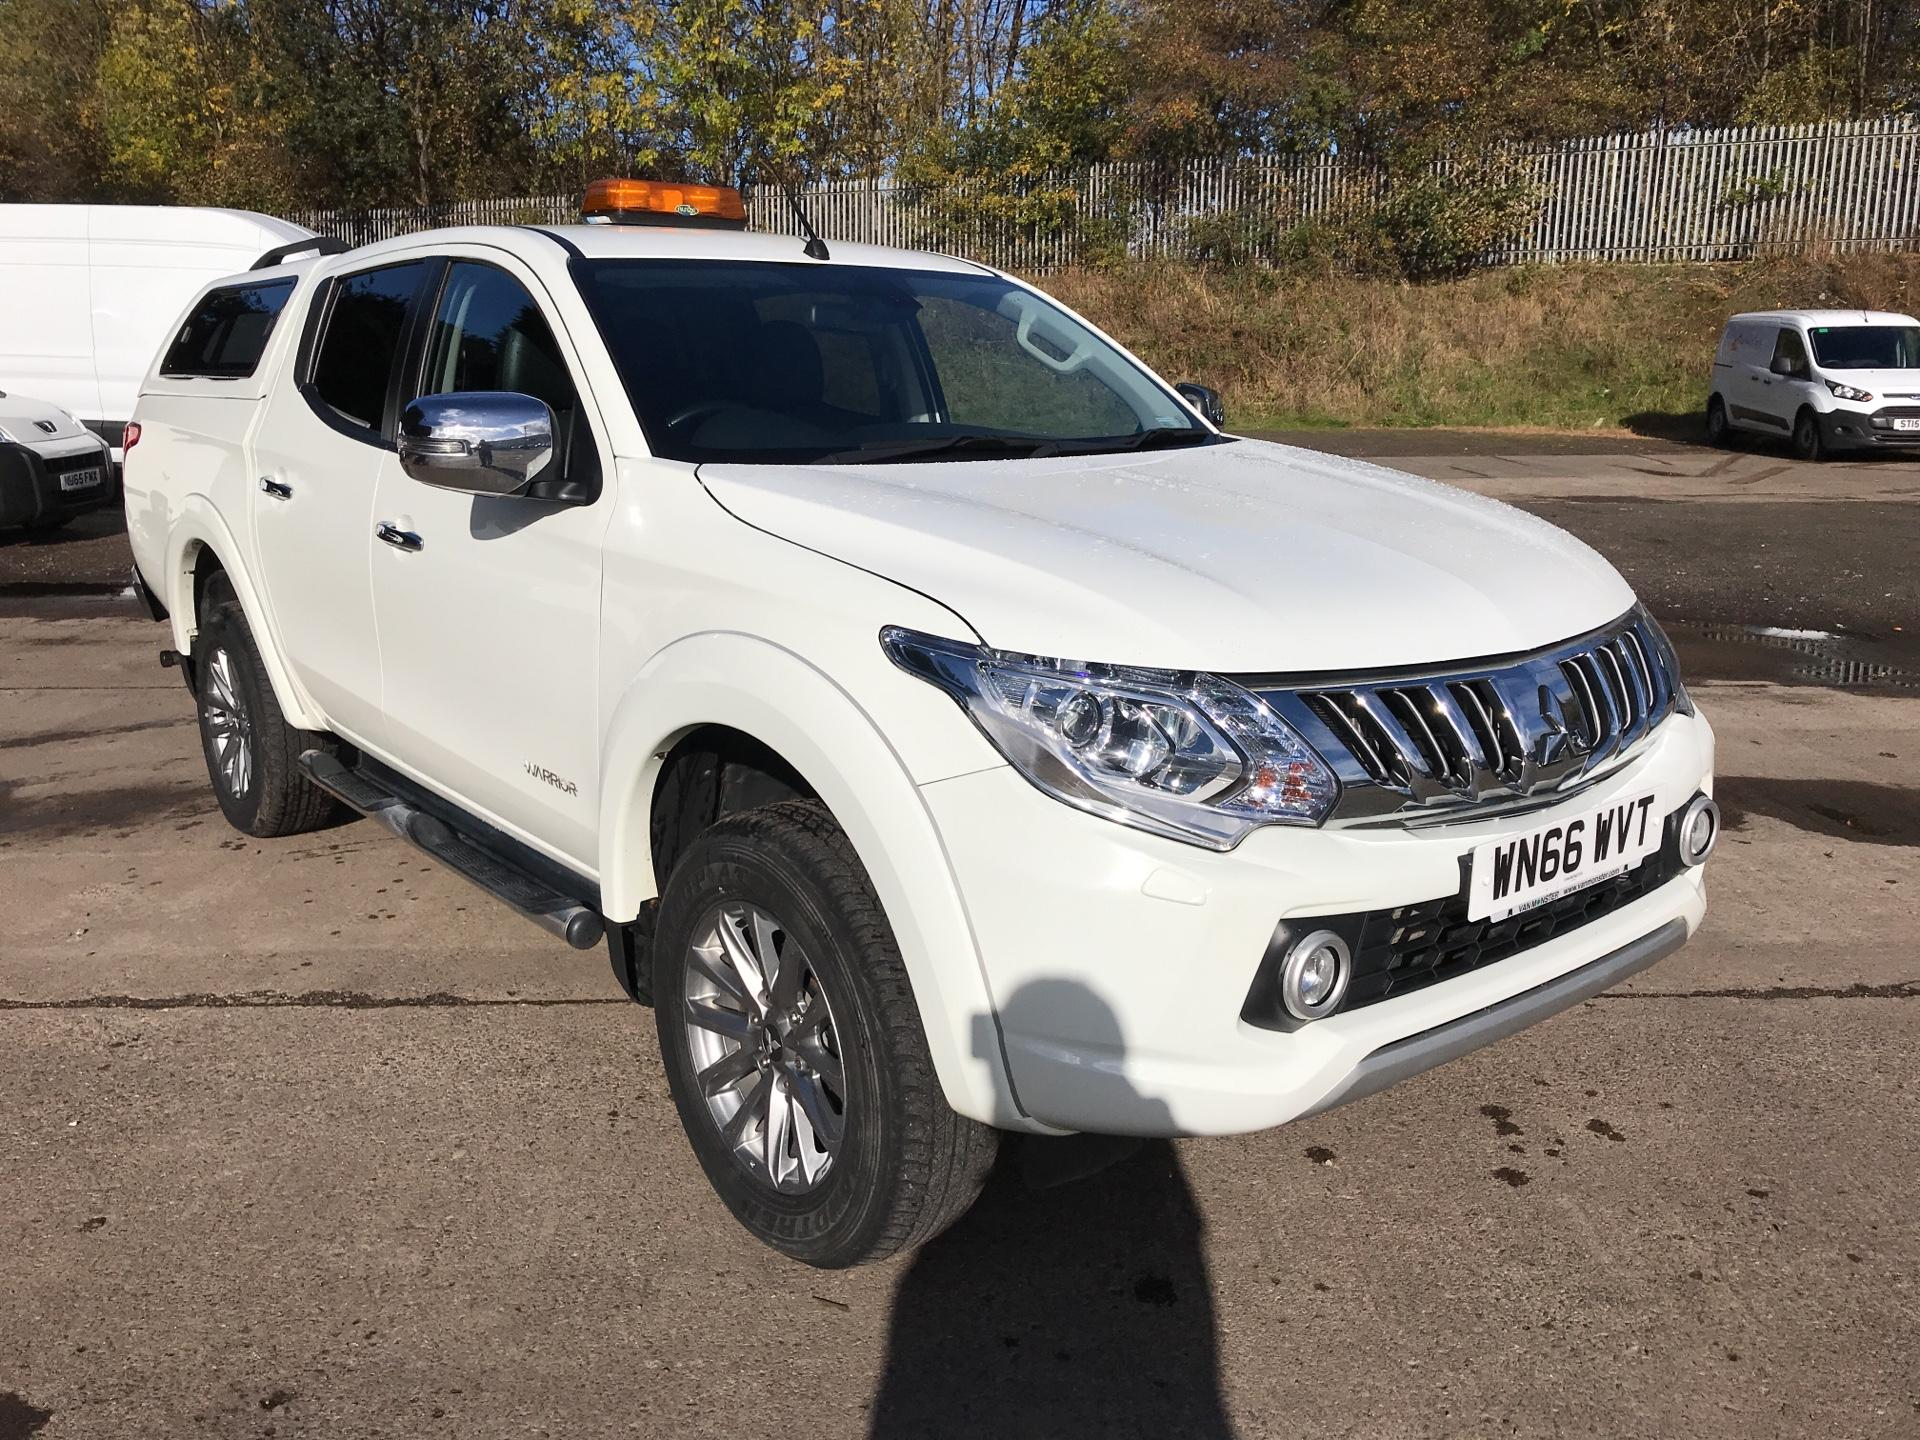 2016 Mitsubishi L200 DOUBLE CAB DI-D 178PS WARRIOR 4WD AUTO